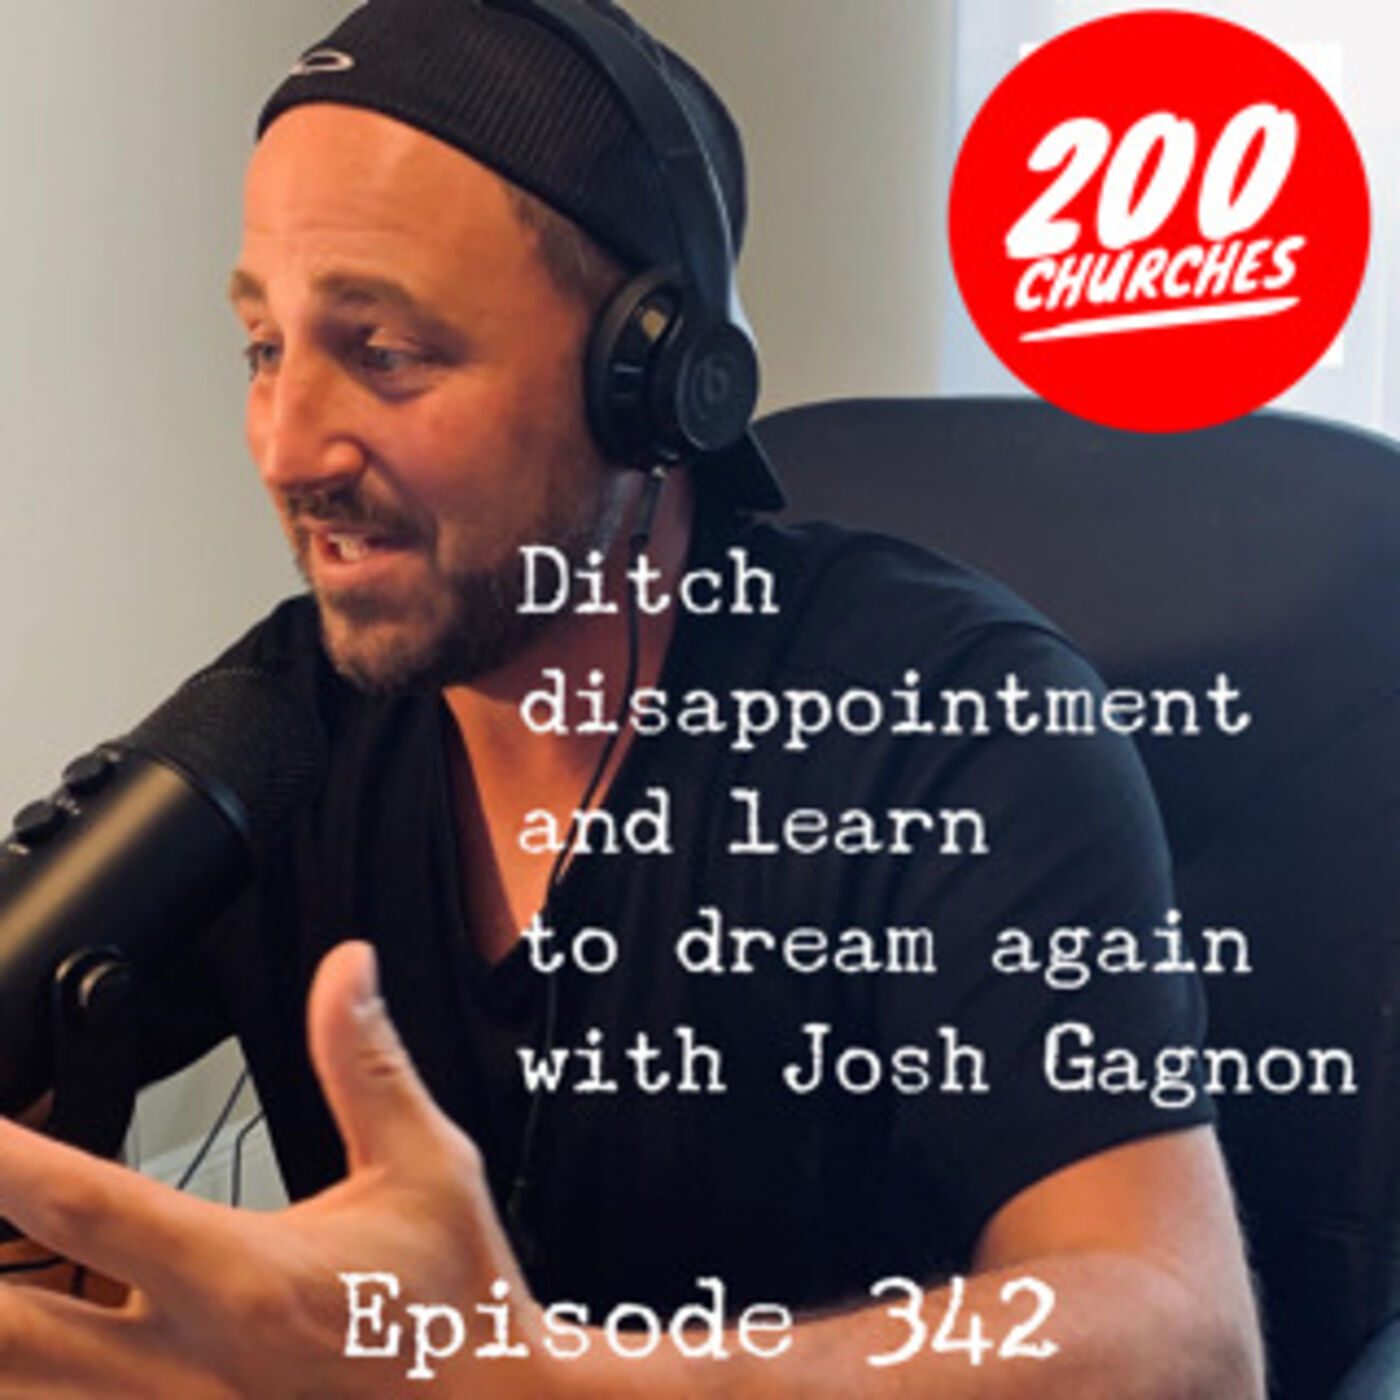 Episode 342 - Ditch Disappointment and Learn To Dream Again with Josh Gagnon